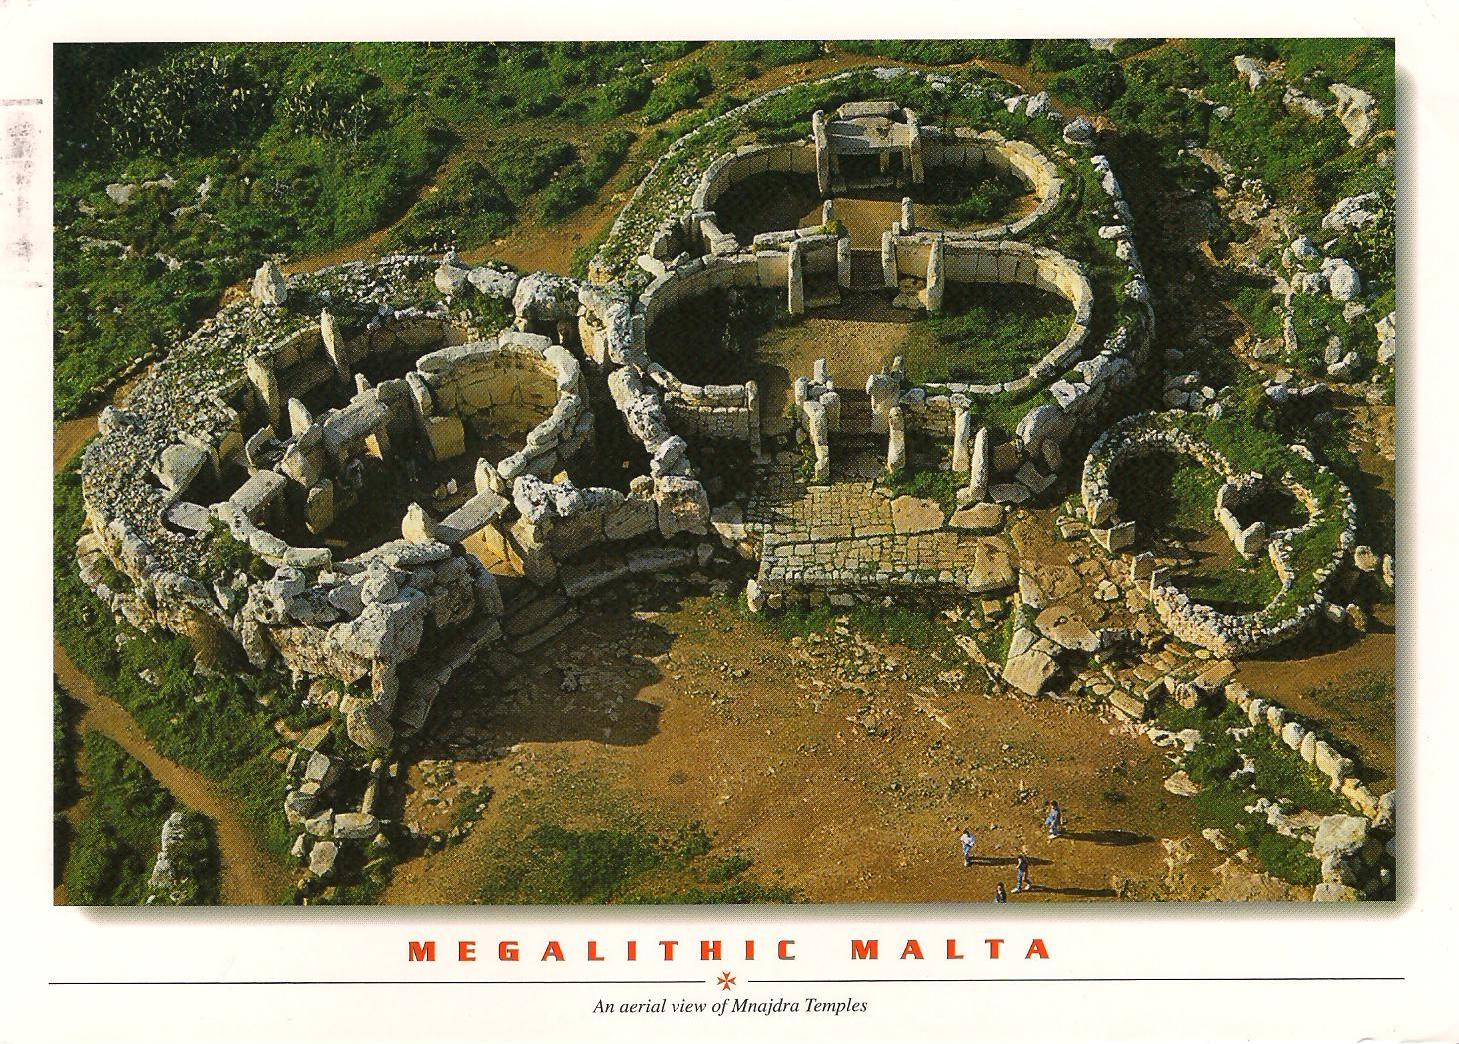 What-are-the-Megalithic-Temples-of-Malta.jpg